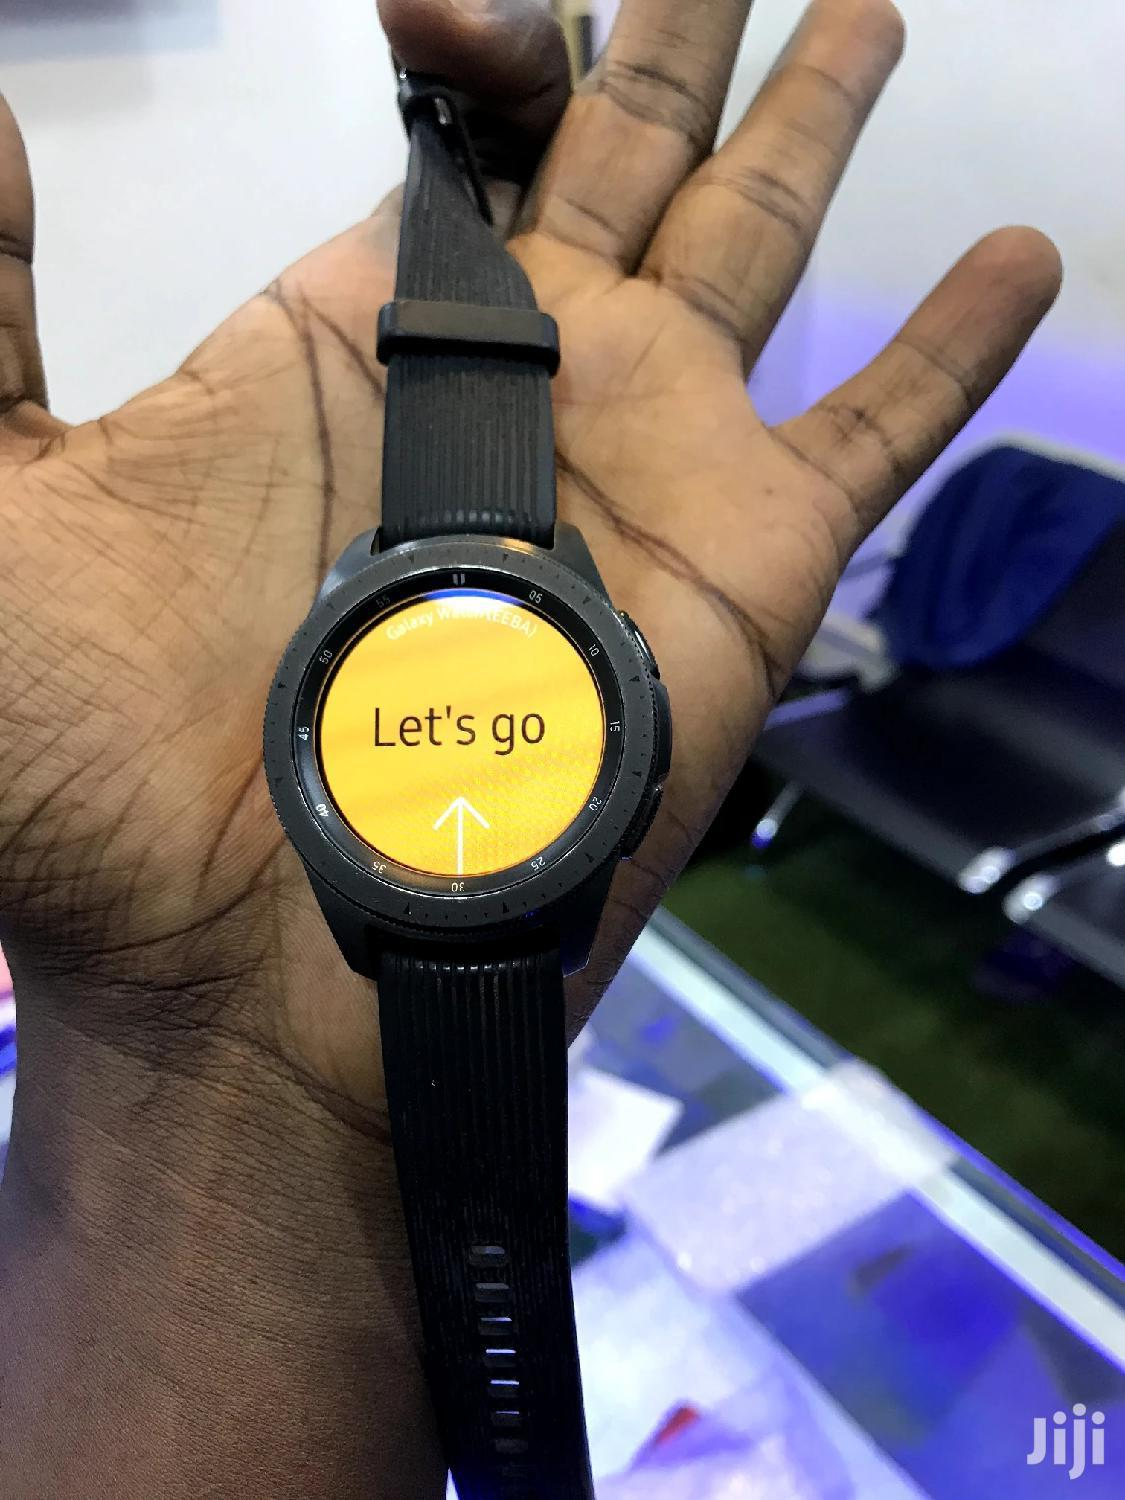 Samsung Smart Watch Active | Smart Watches & Trackers for sale in Kampala, Central Region, Uganda